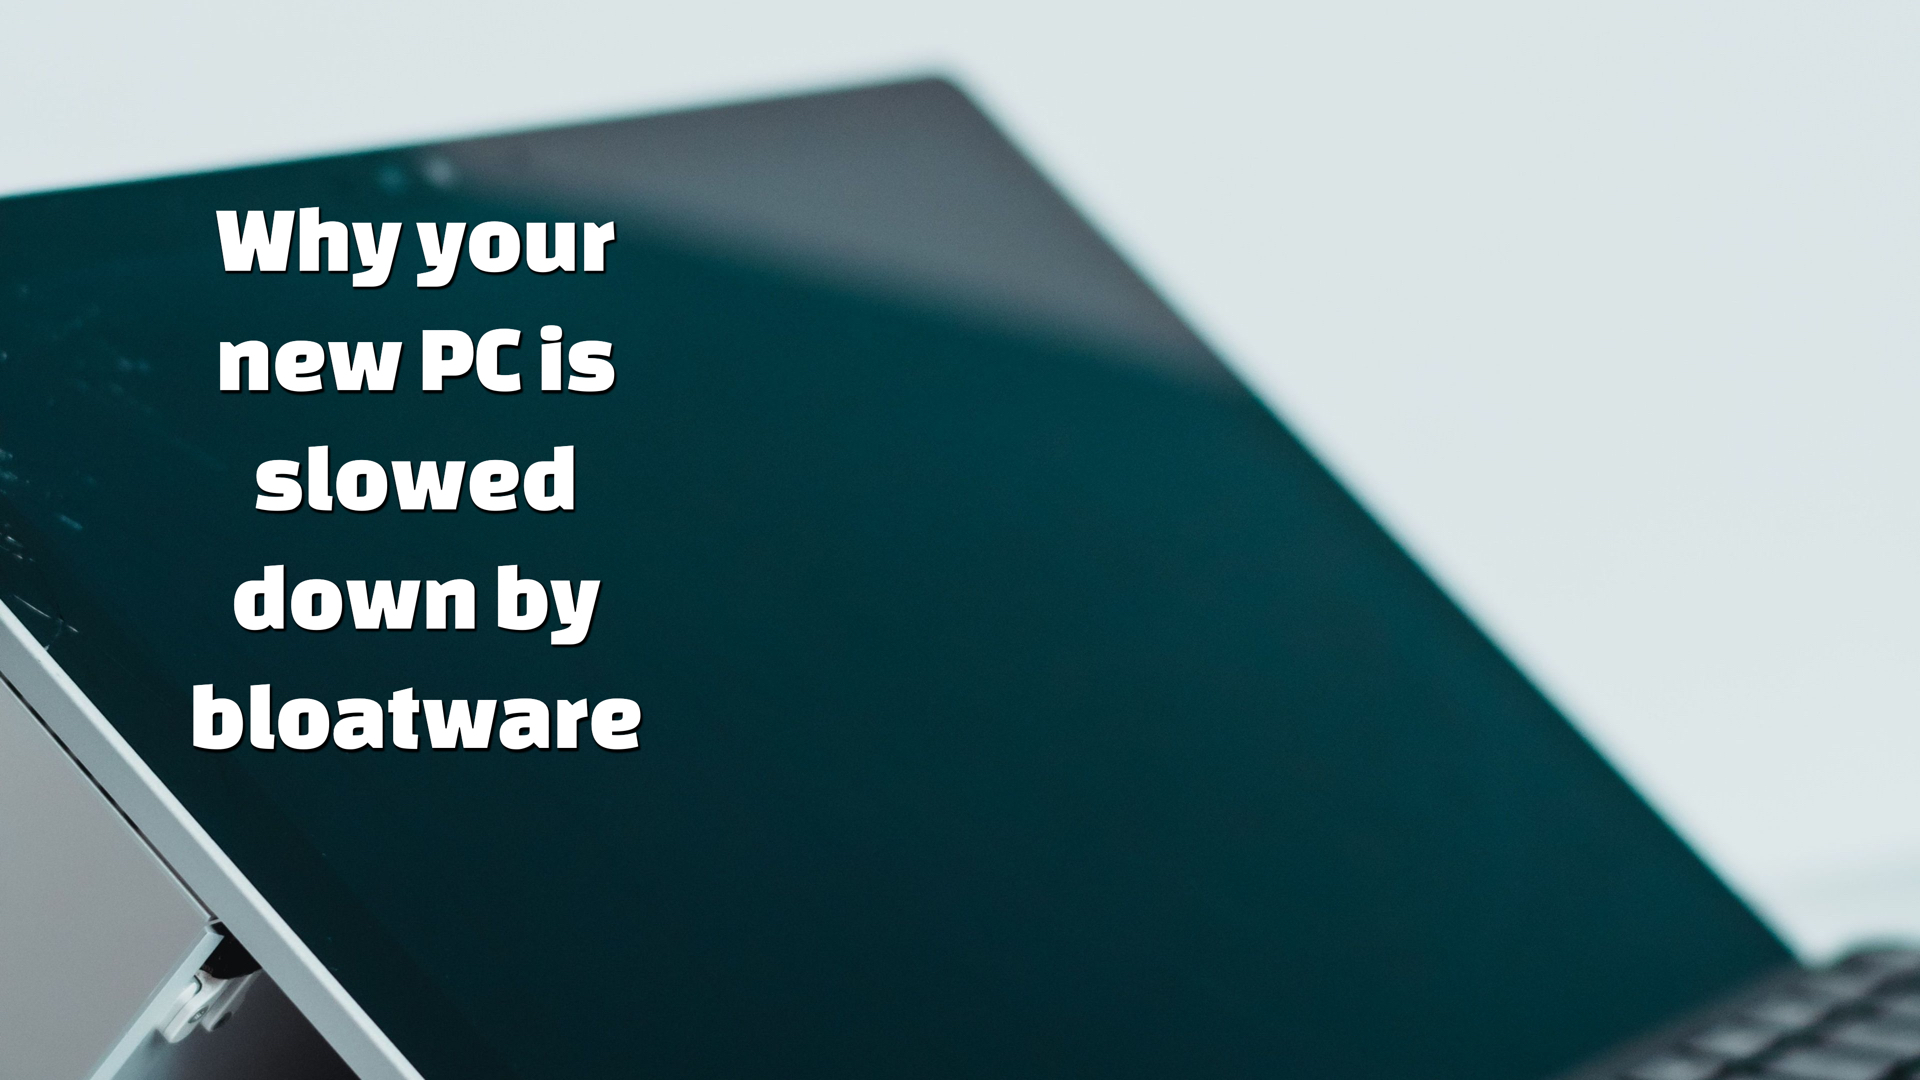 PC slowed down by bloatware